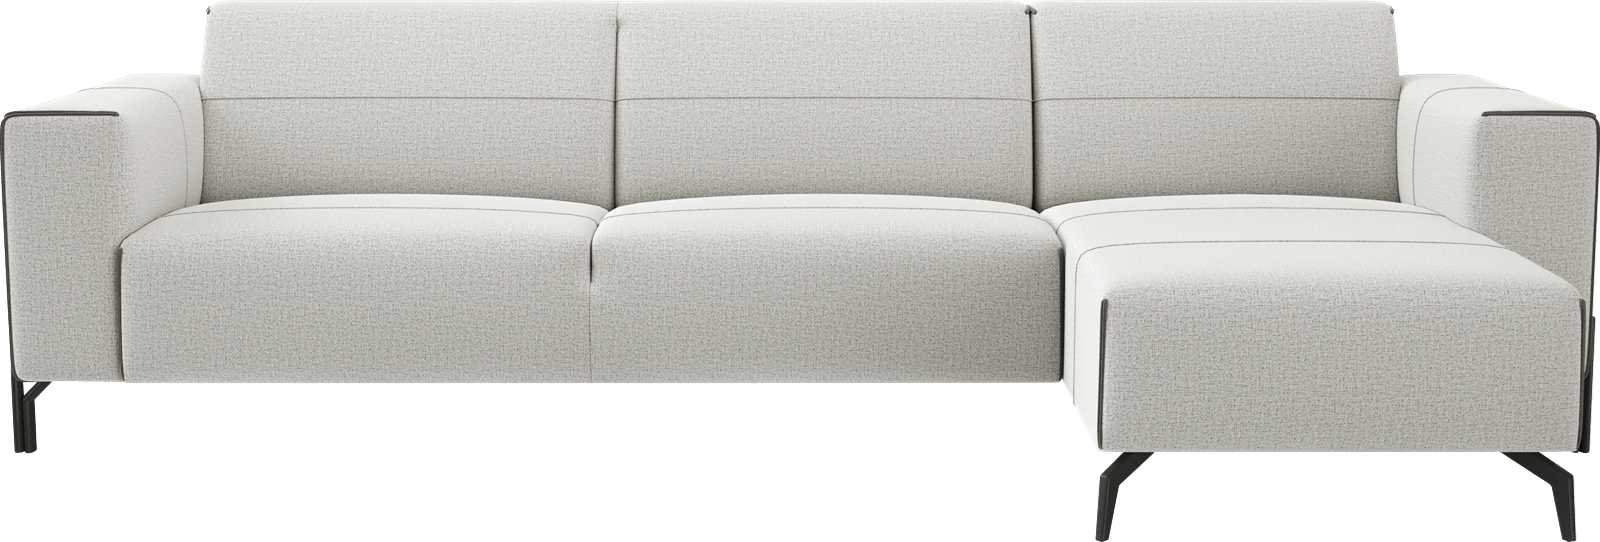 XOOON - Prakan - Sofas - 2 seater arm left - Longchair right